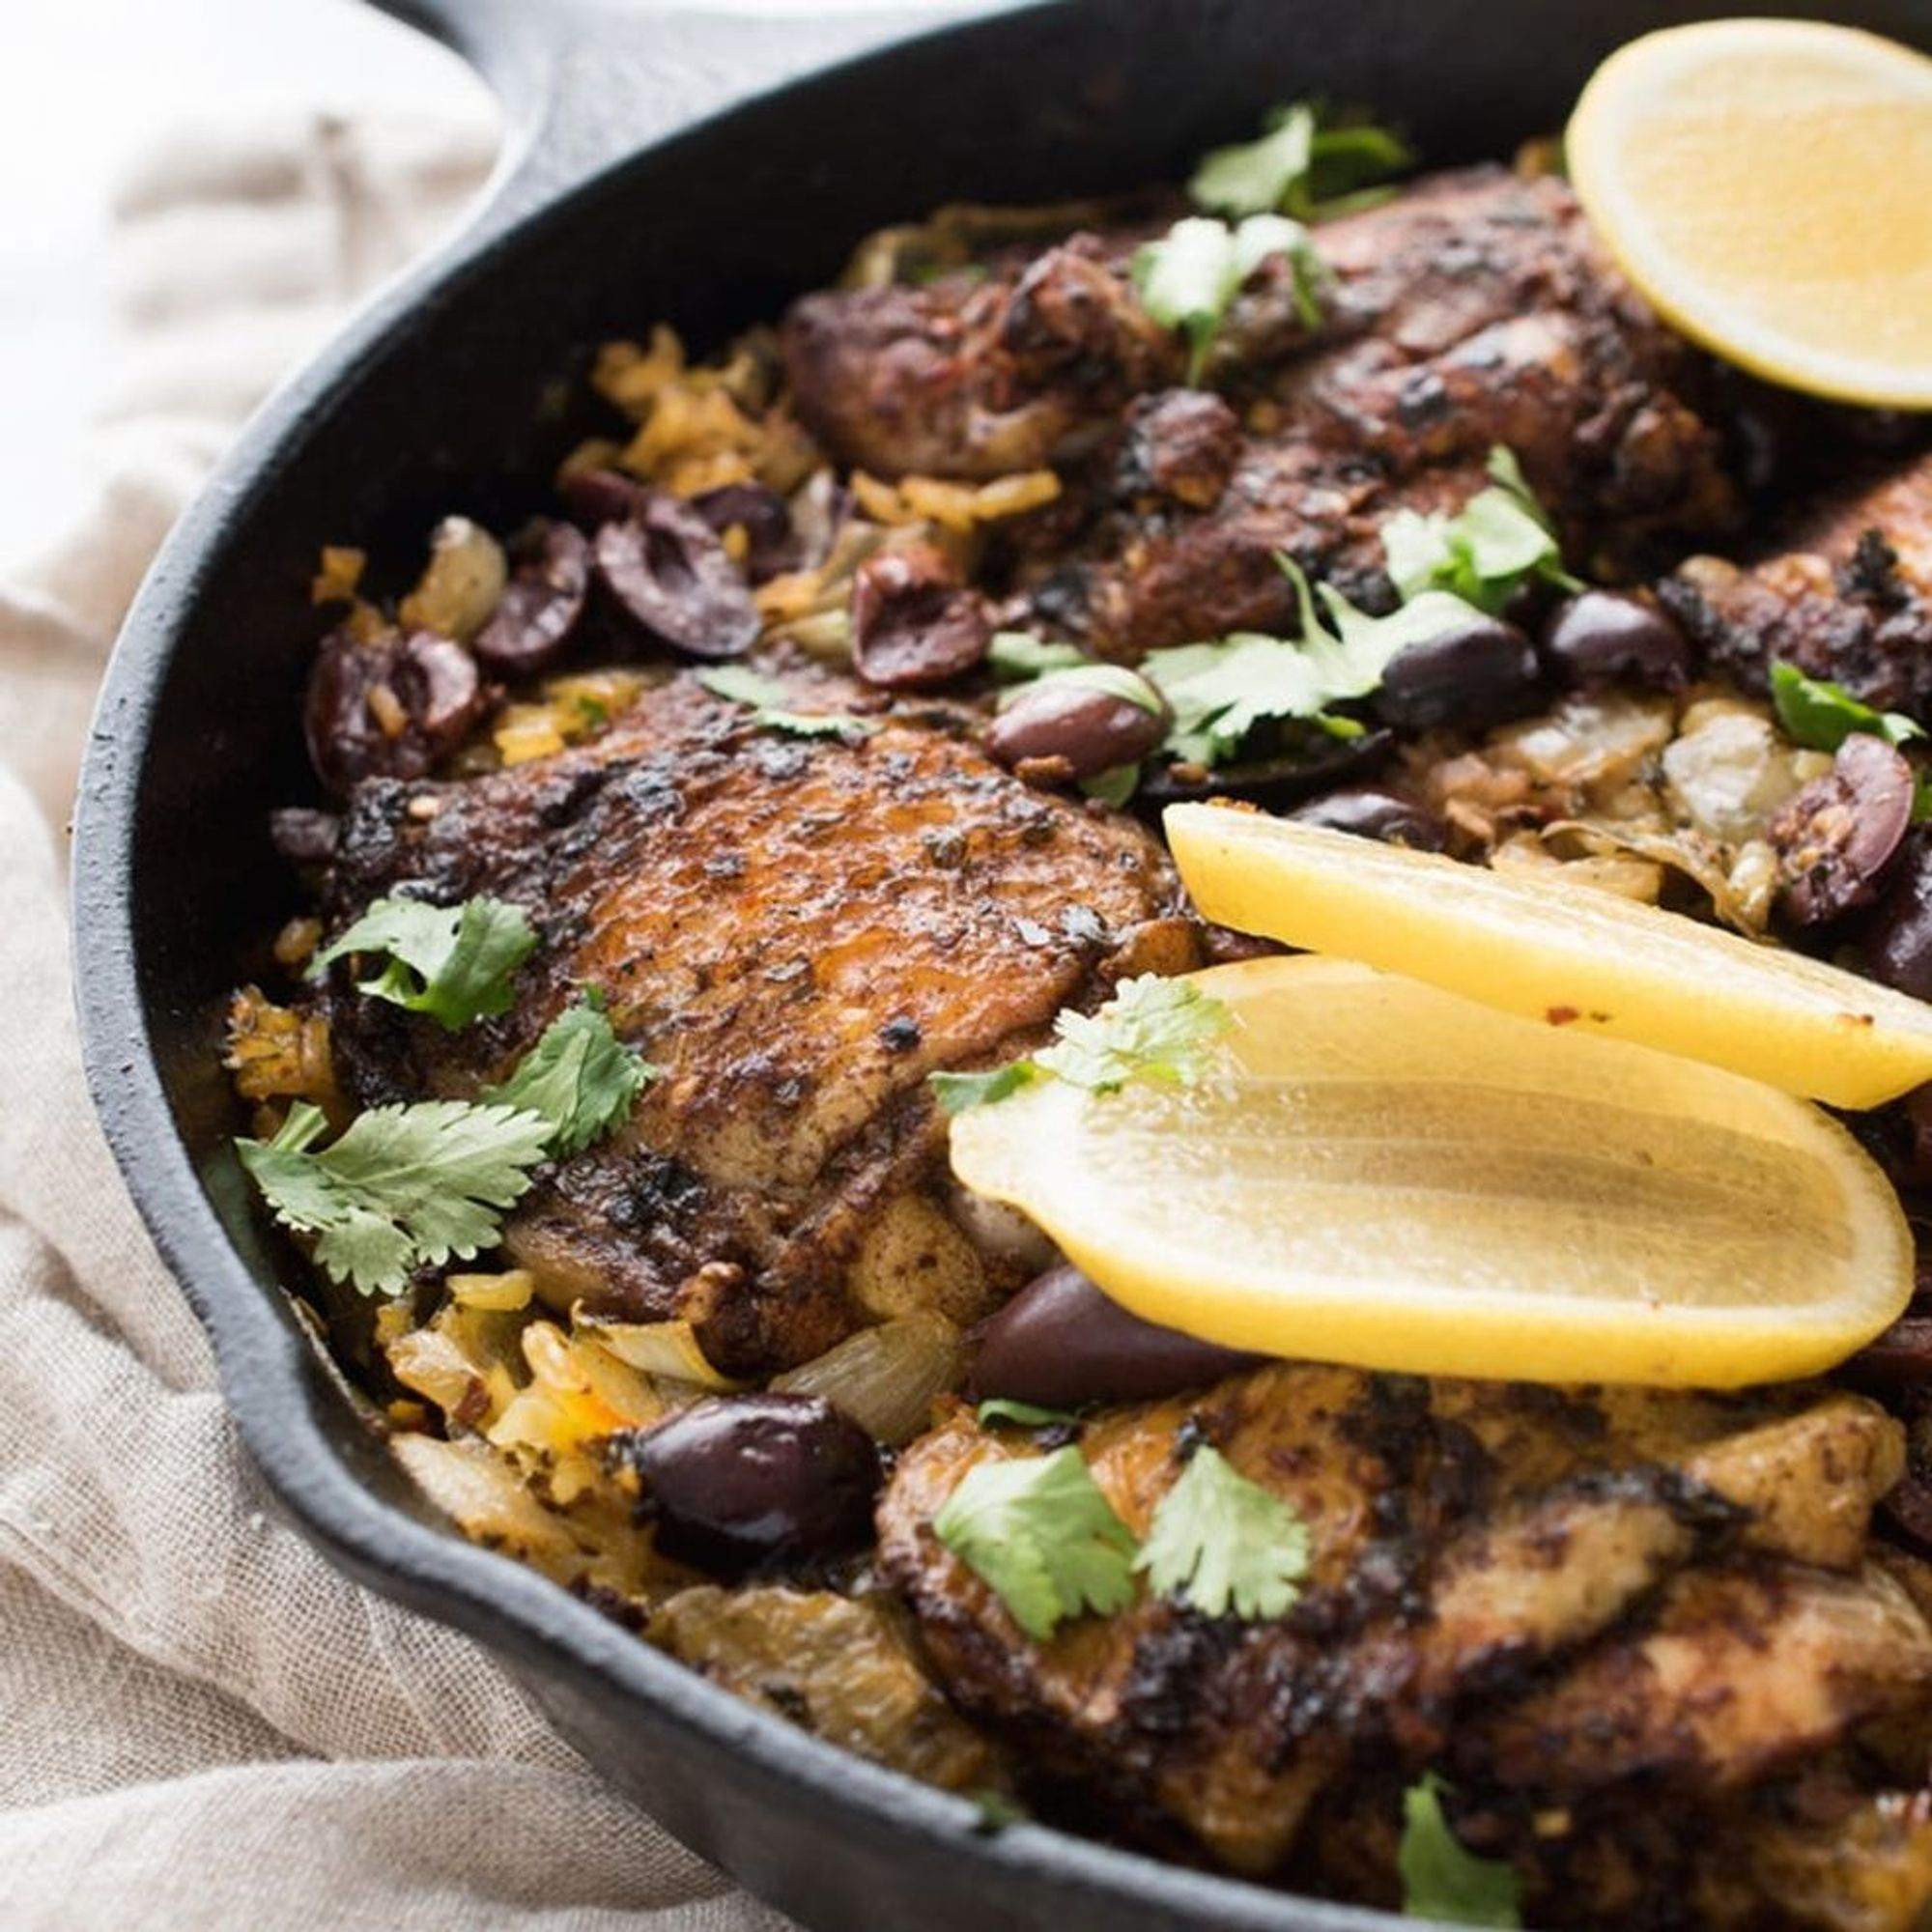 18 One-Pot Chicken And Rice Dishes For An All-in-One Meal